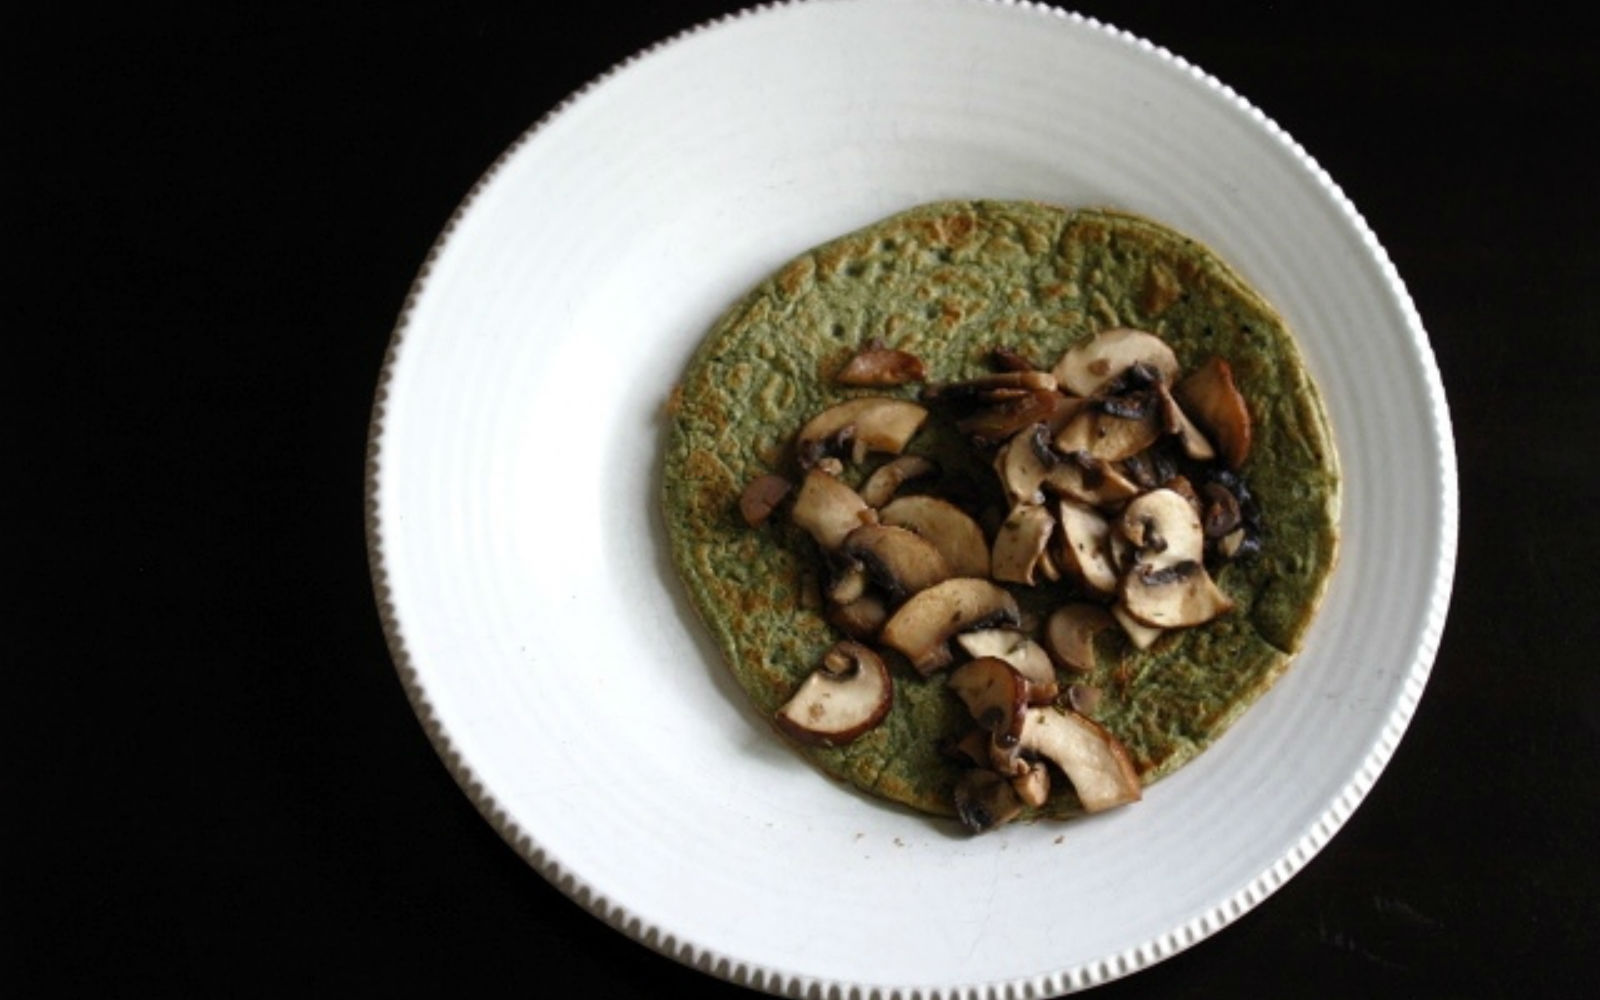 Vegan Savory Spinach Crepes with Sautéed Mushrooms [Gluten-Free]